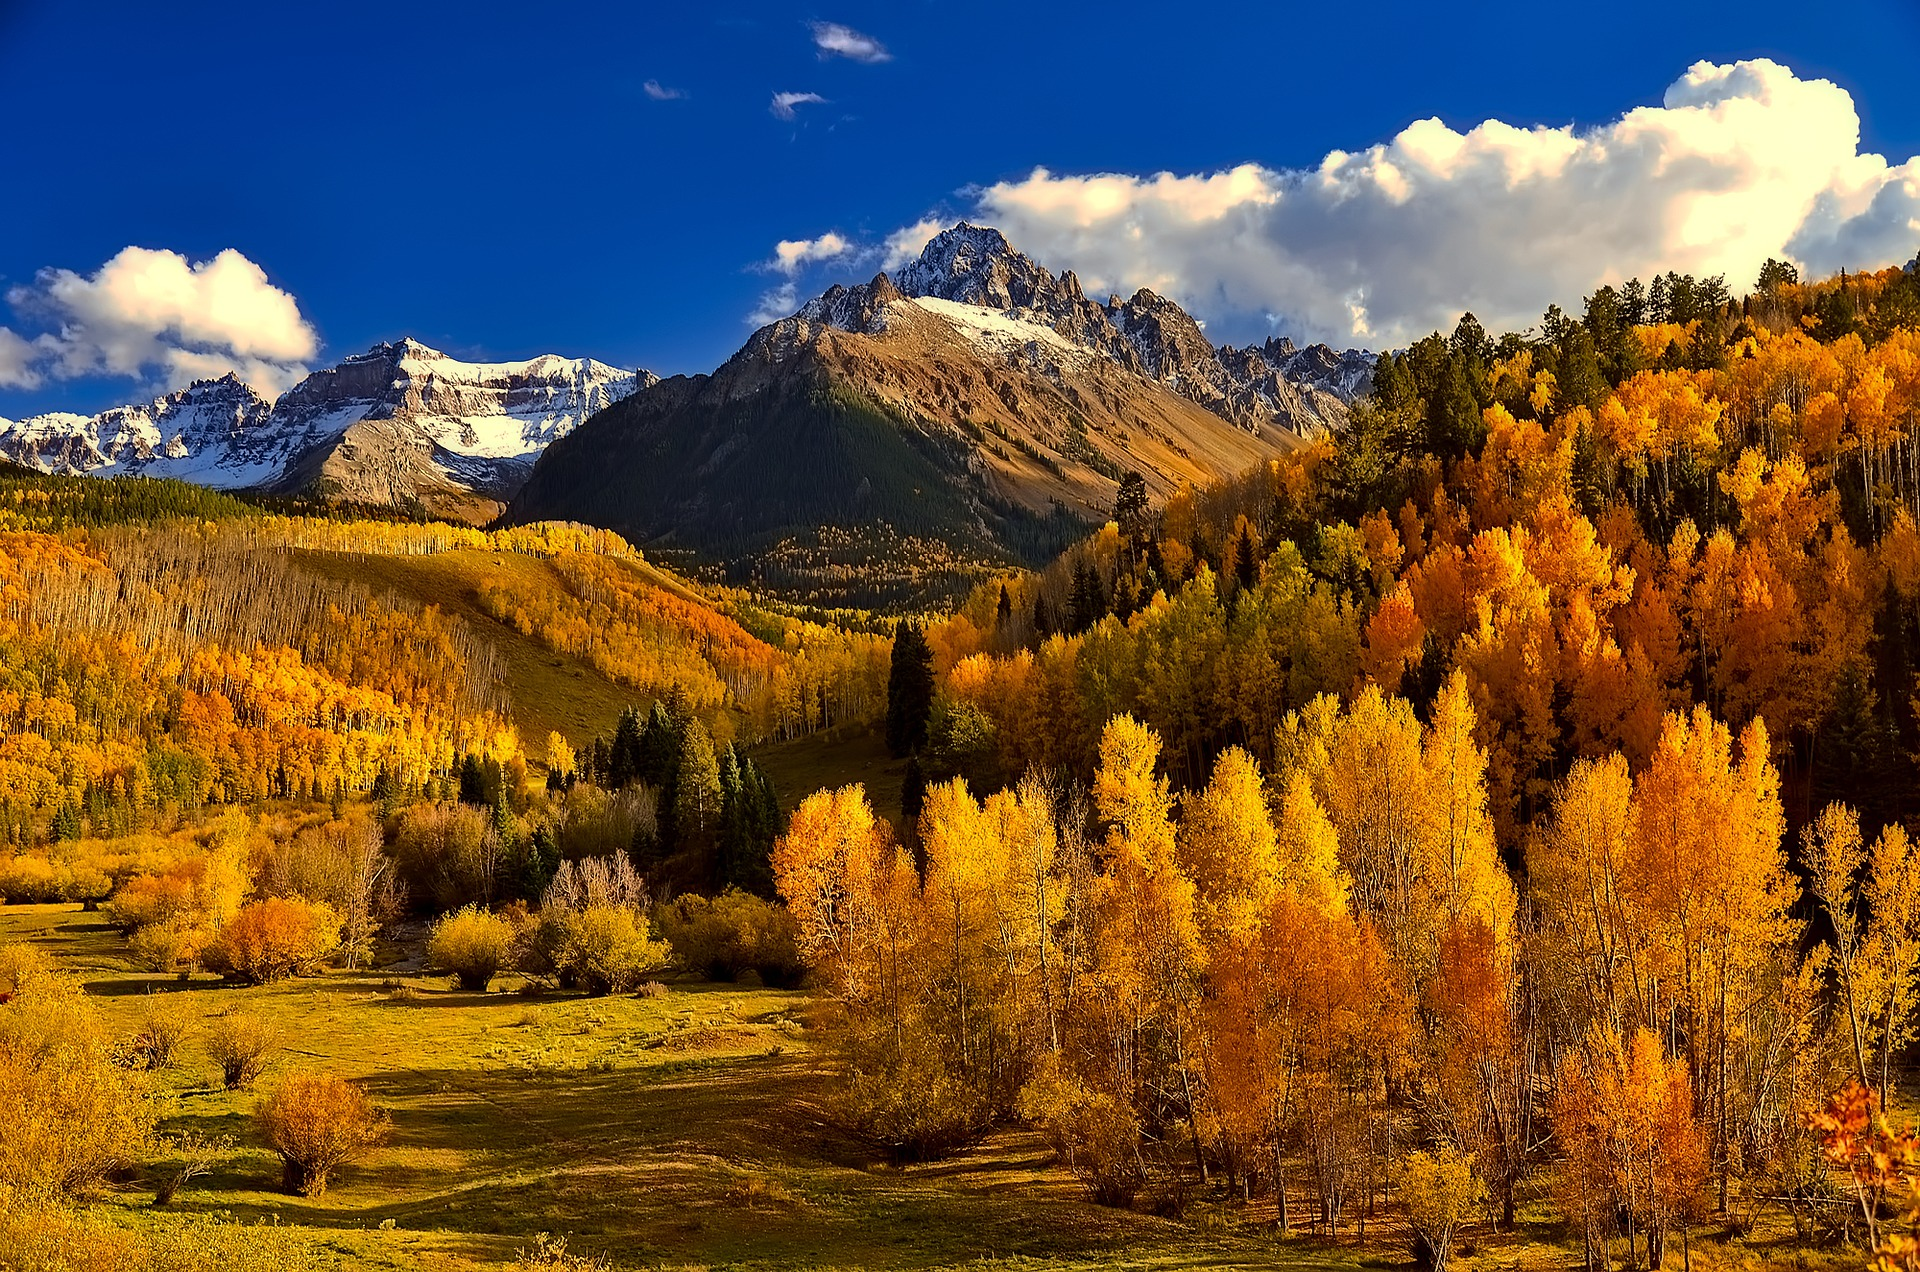 Trees growing on a mountain slope turn gold and crimson.